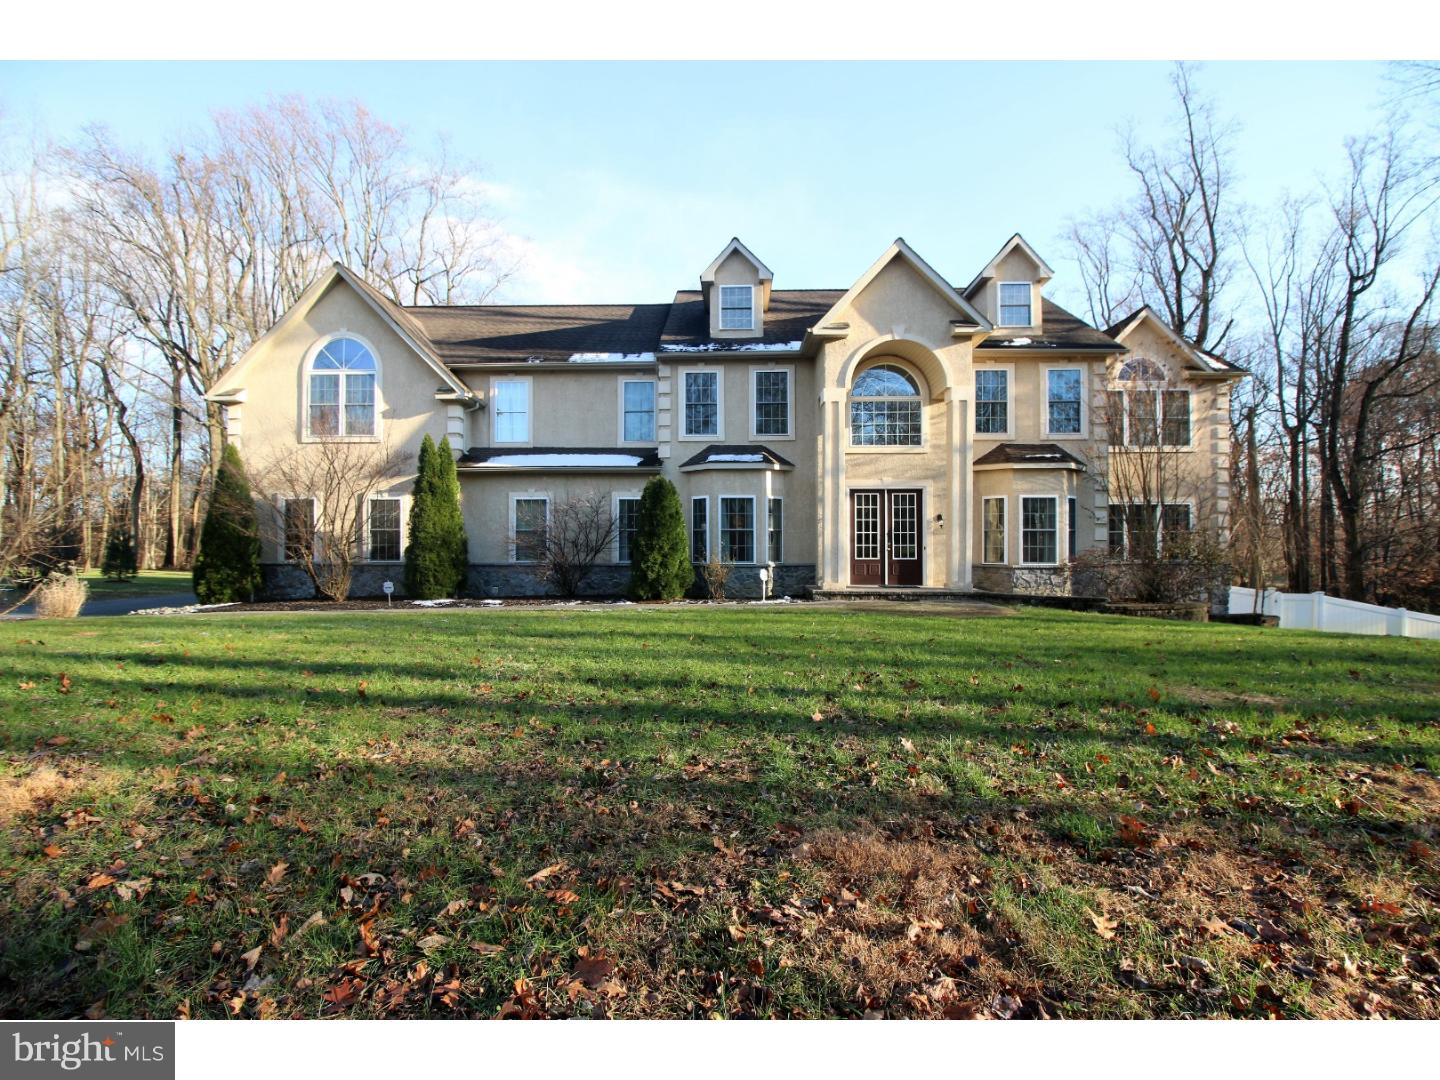 127 ERICA DRIVE, WOOLWICH TOWNSHIP, NJ 08085